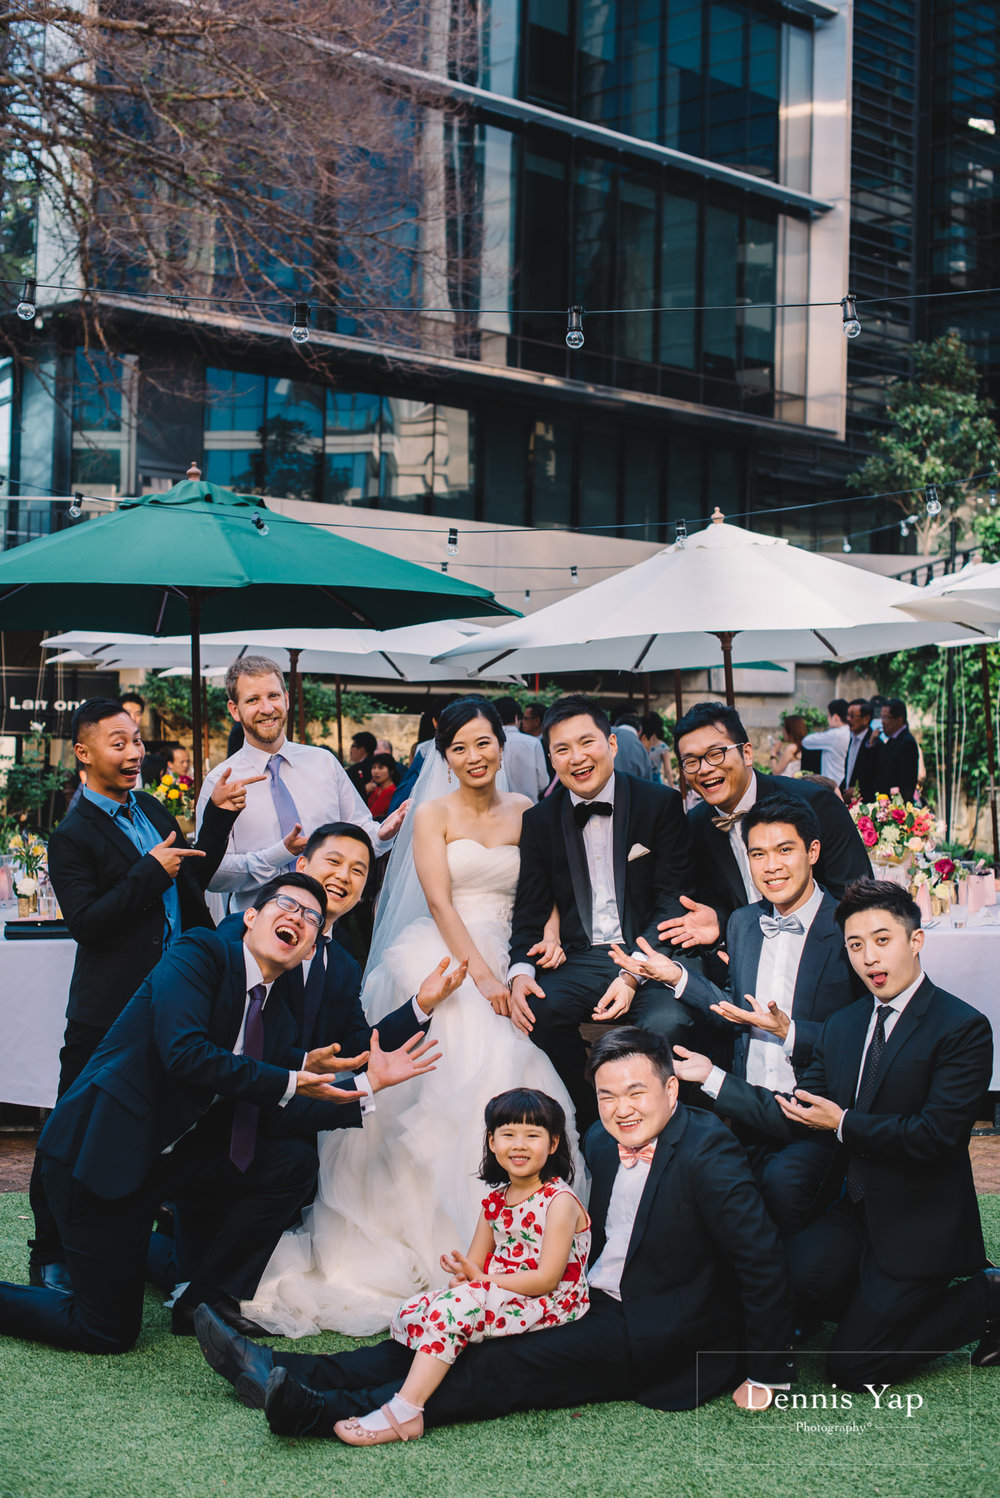 ethan janet perth wedding reception and garden ceremony in lamonts dennis yap photography-33.jpg